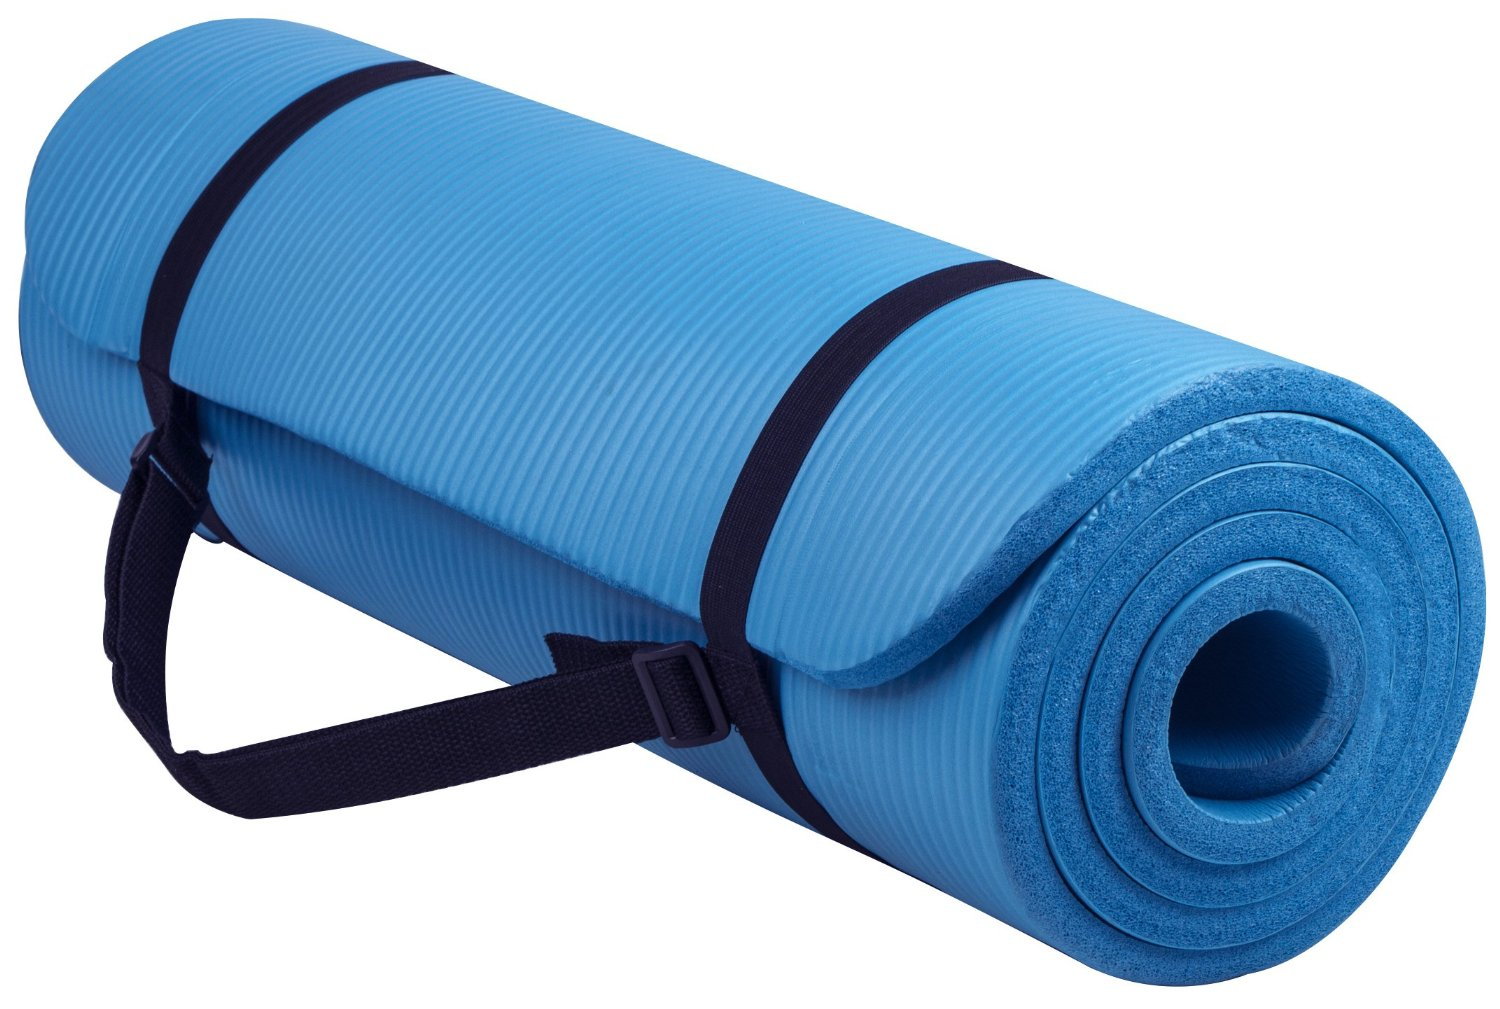 pad mats from in yoga foldable eco travel slip sports item pilates exercise fitness non tpe mat thick